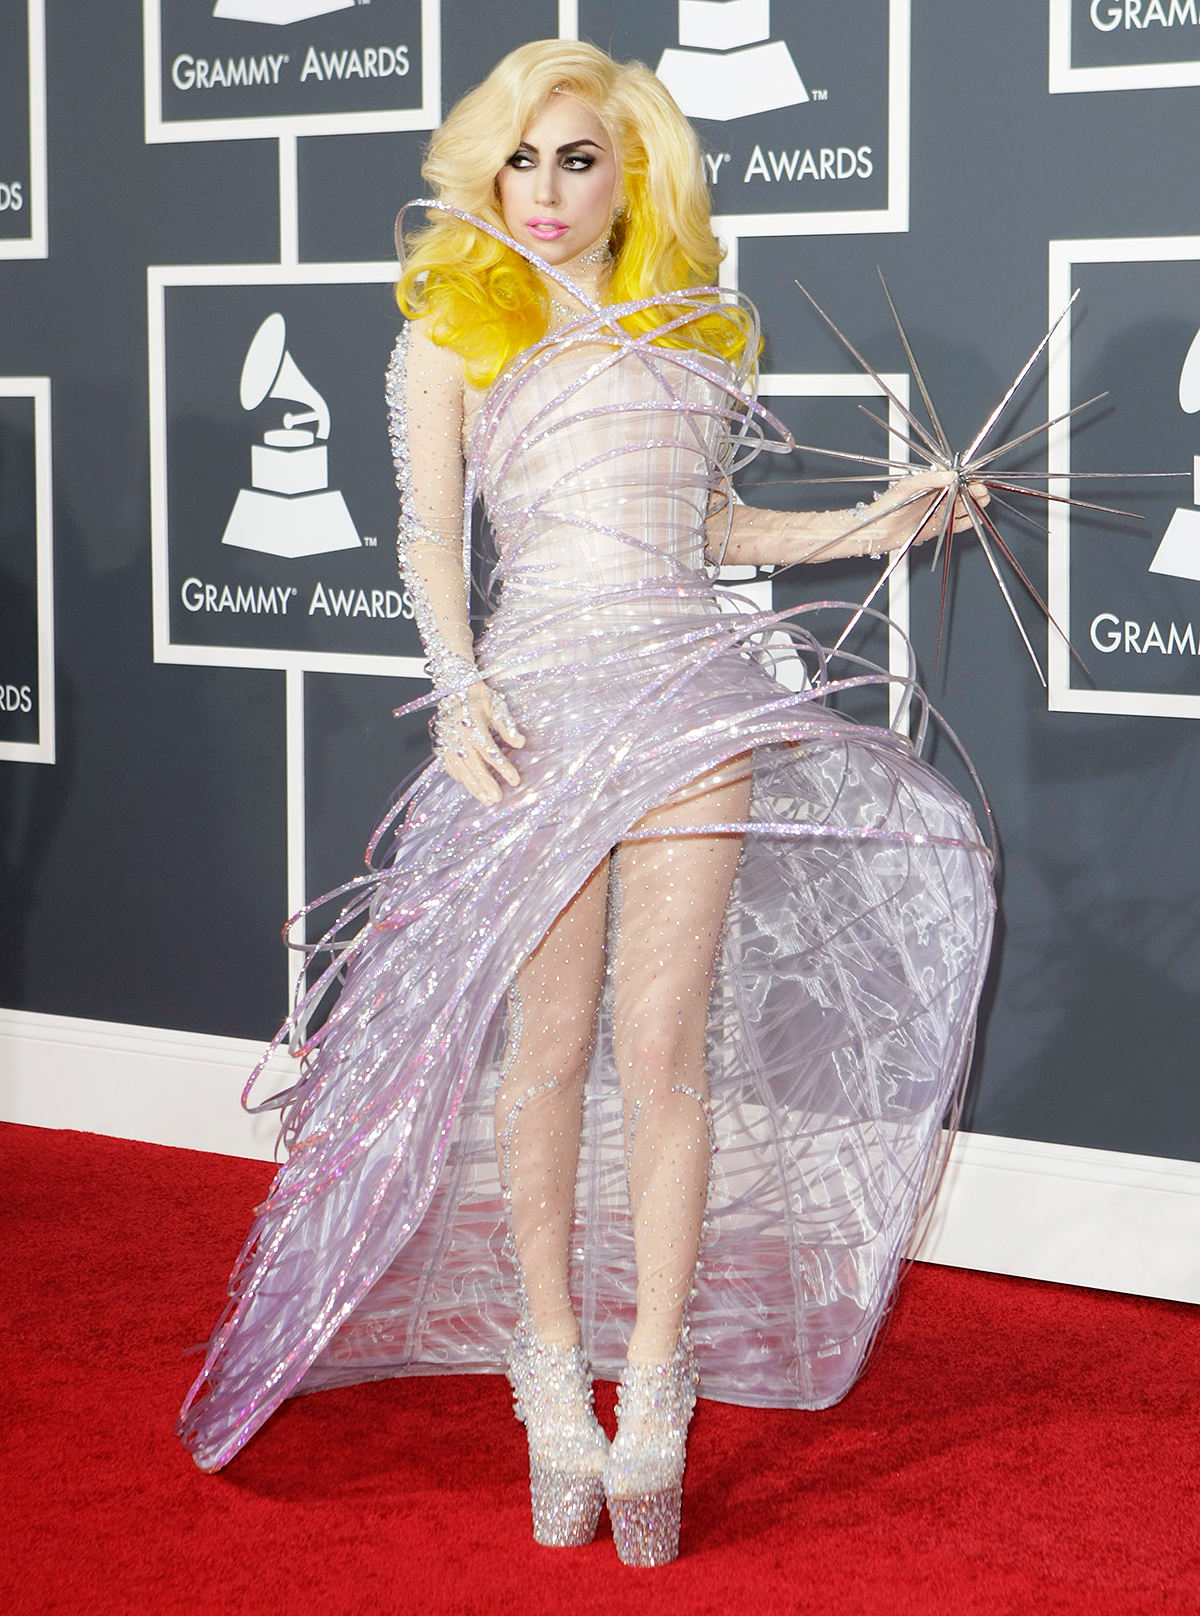 Try ... Pretty Much Anything Lady Gaga Has Worn on the Carpet